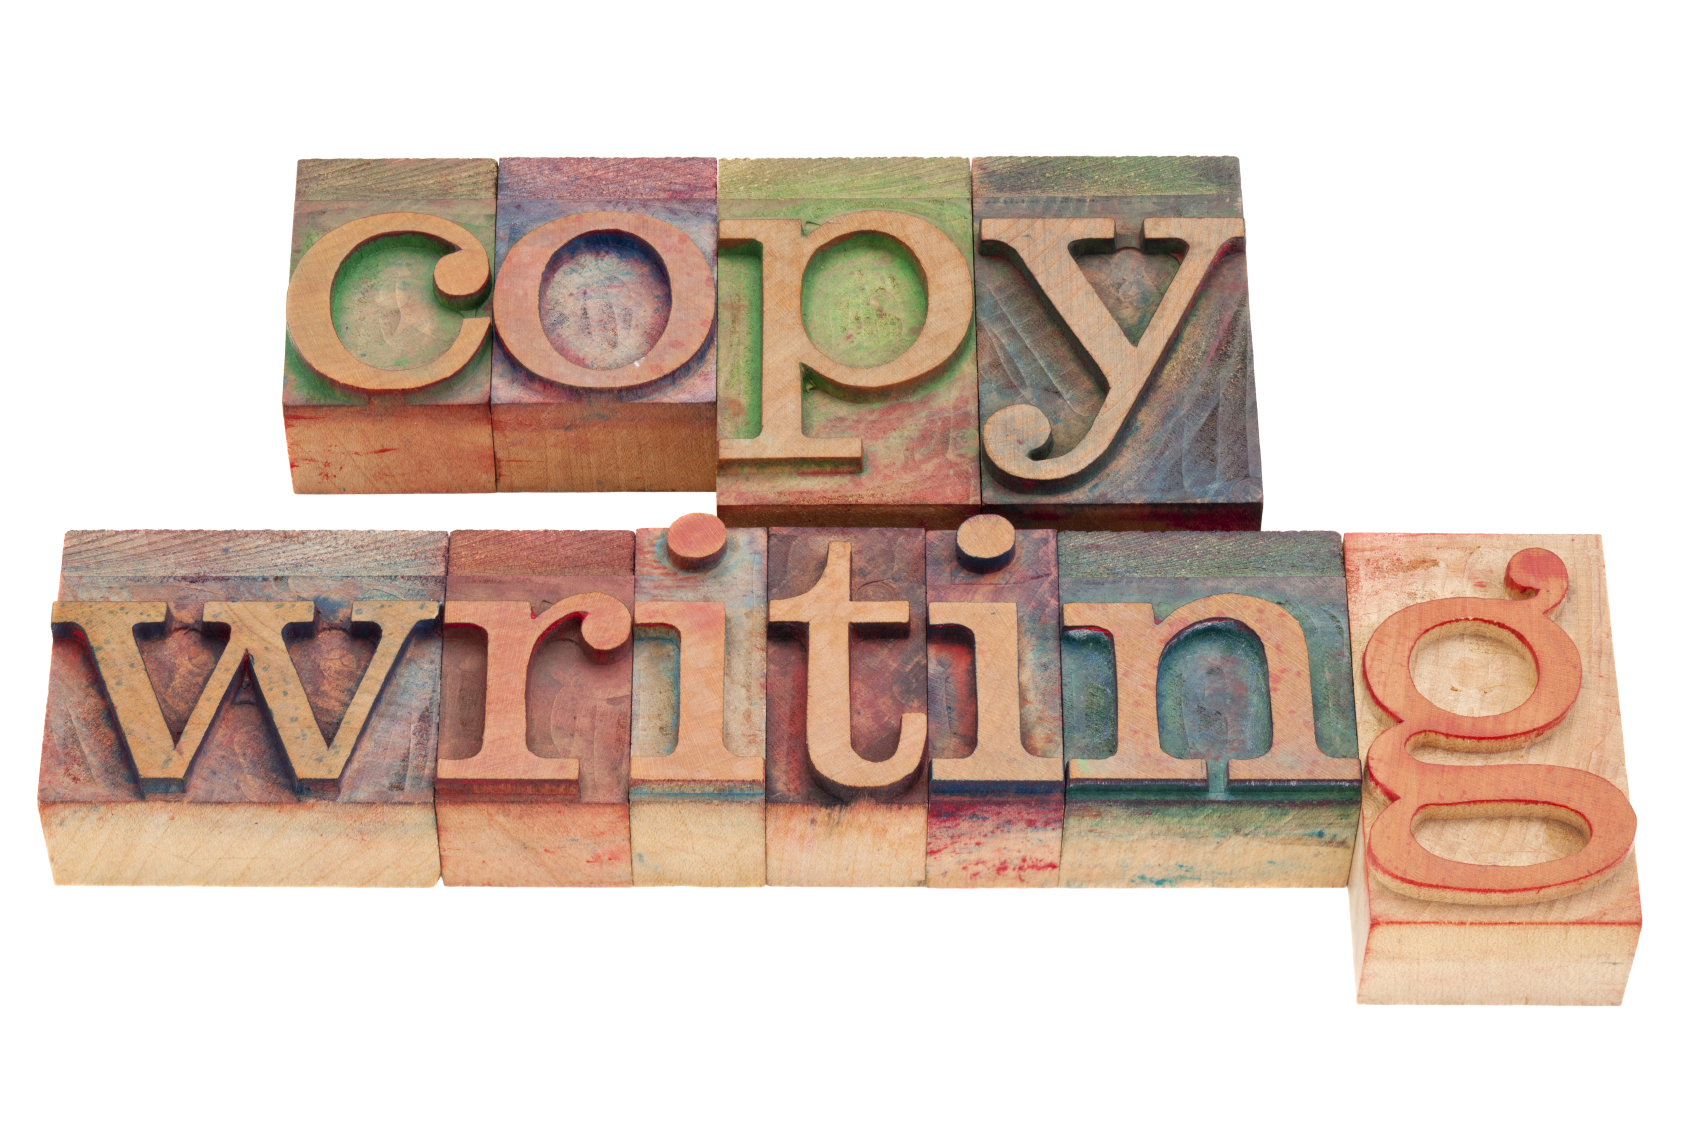 Web site copywriting